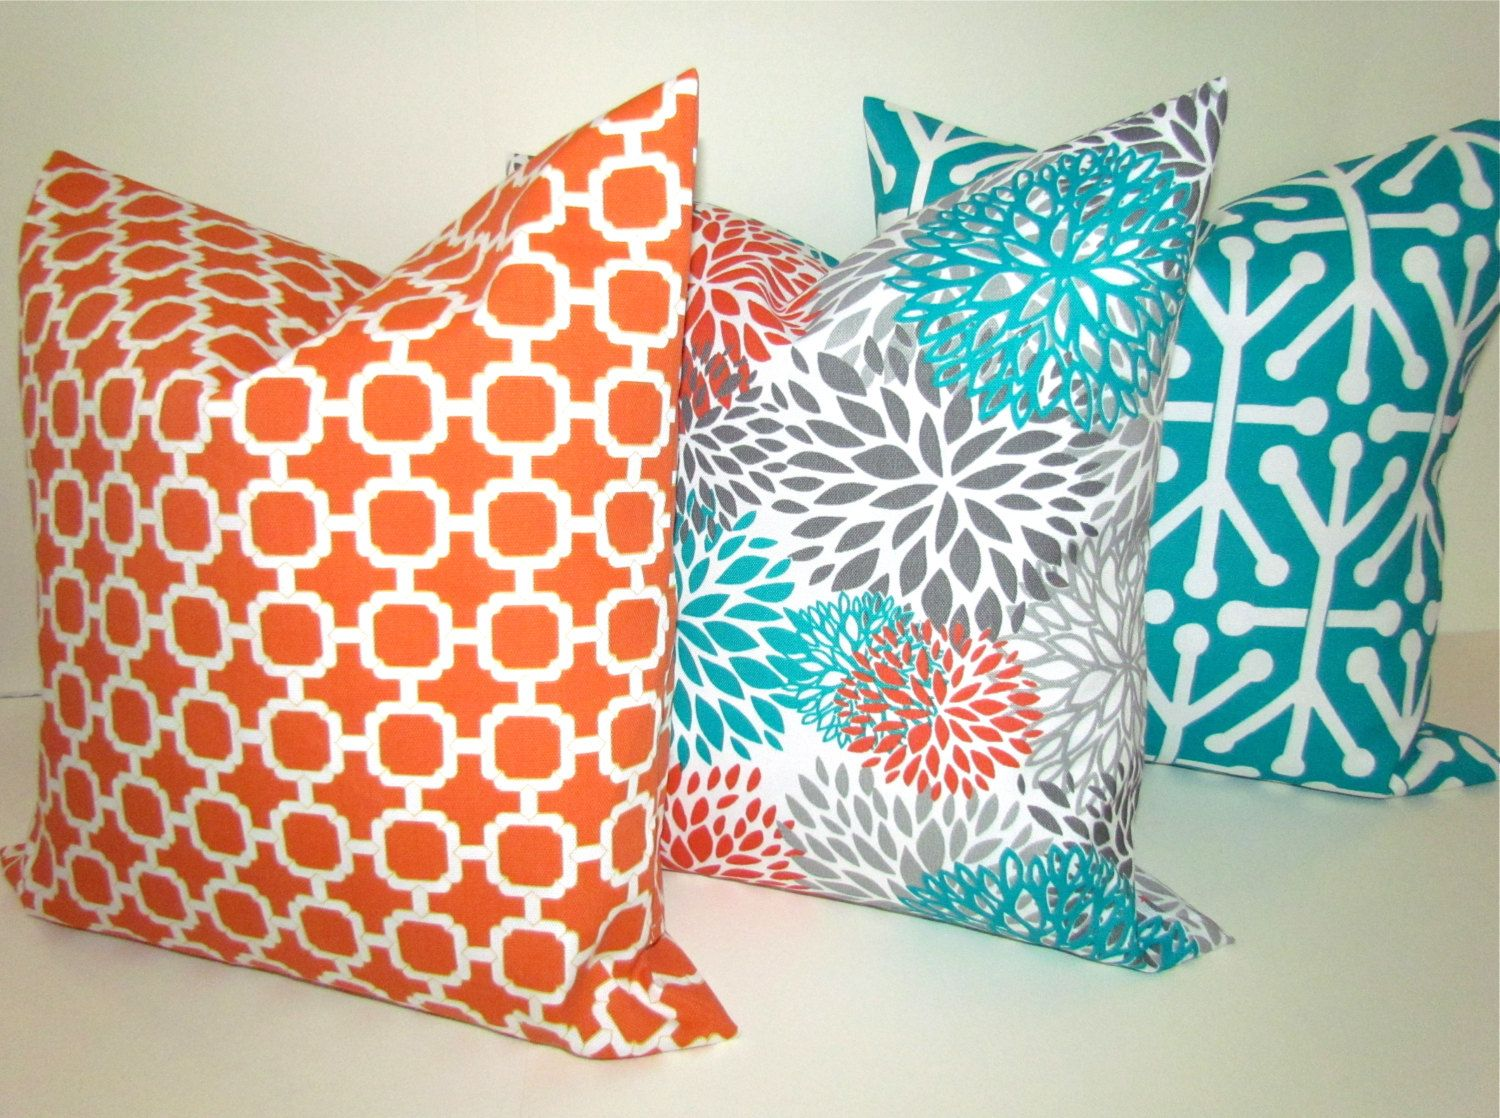 Throw Pillows 20x20 Orange Teal Throw Pillow Covers 20x20 Teal Turquoise Gray Decorative Throw Pillow Throw Pillows Teal Throw Pillow Covers Teal Throw Pillows